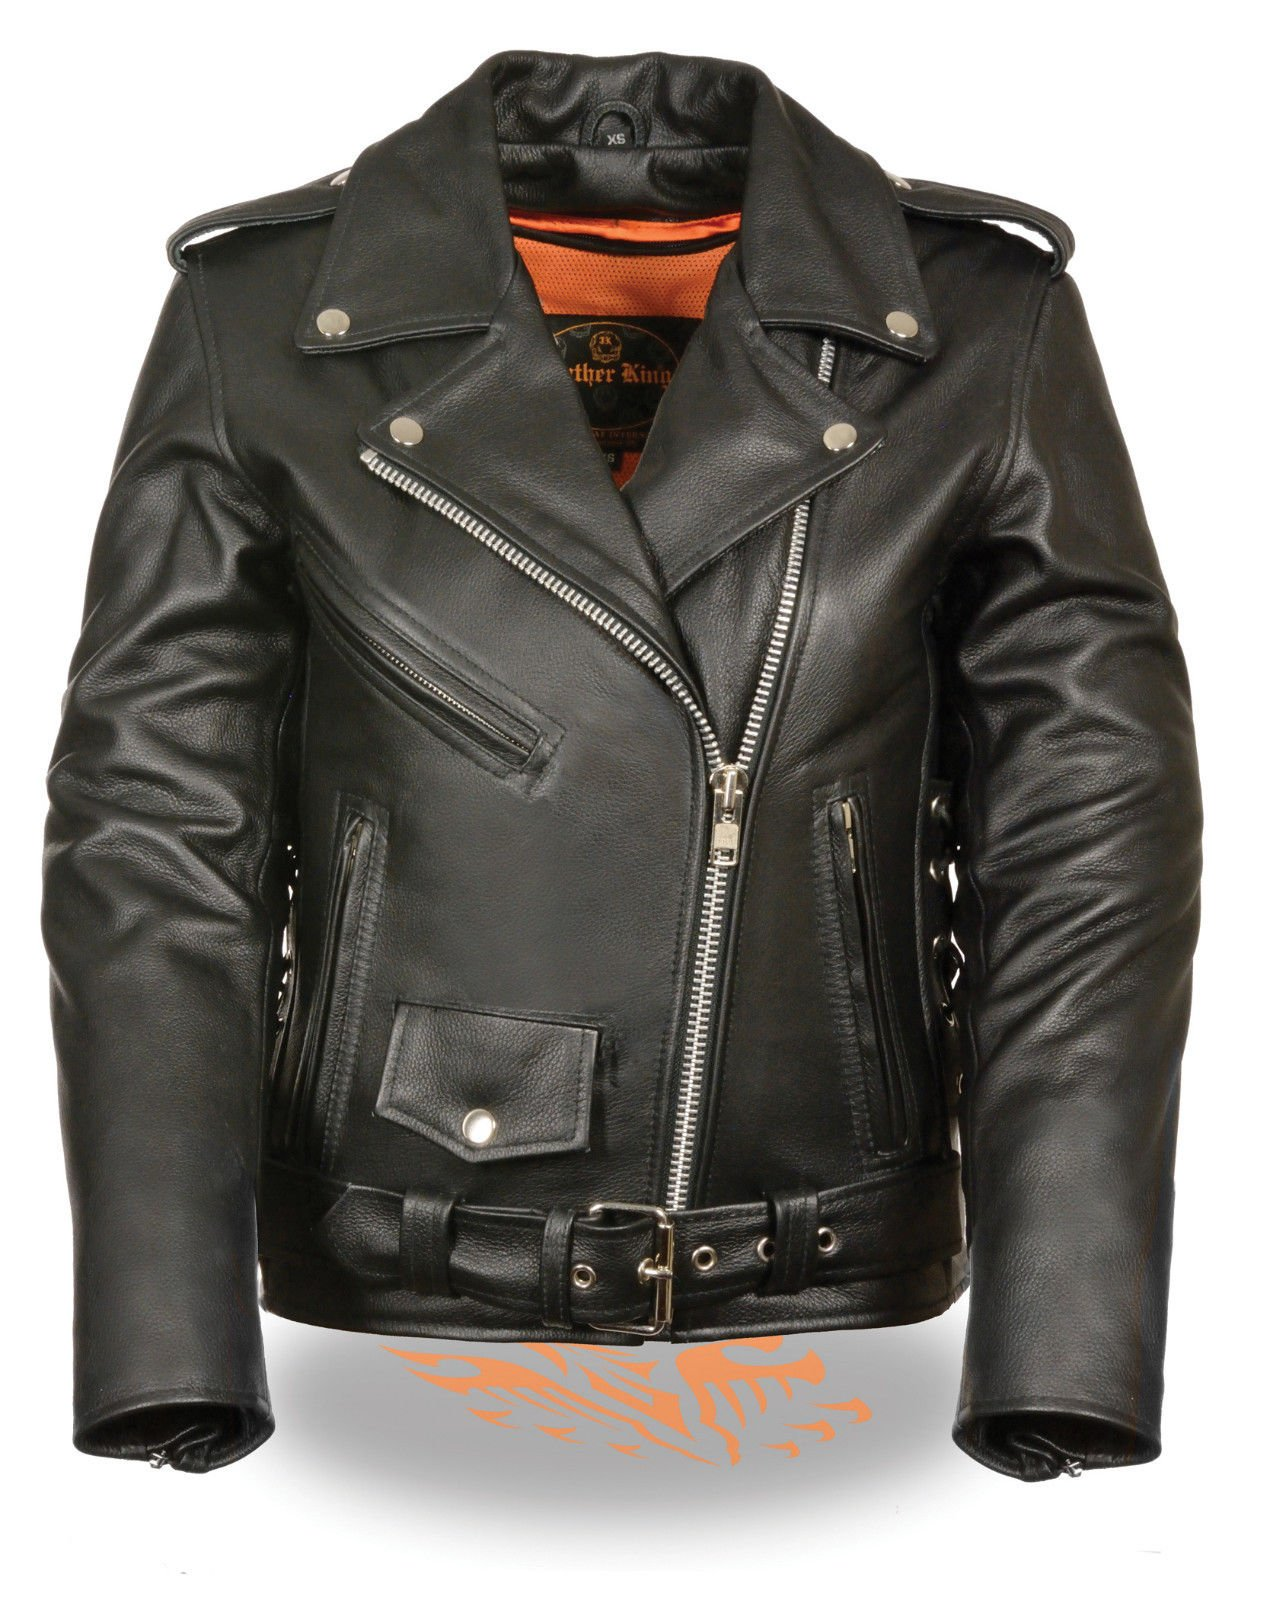 LEATHER KING Motorcycle women's Side lace MC Leather jacket with silver zipper hardware Blk (XS Regular)